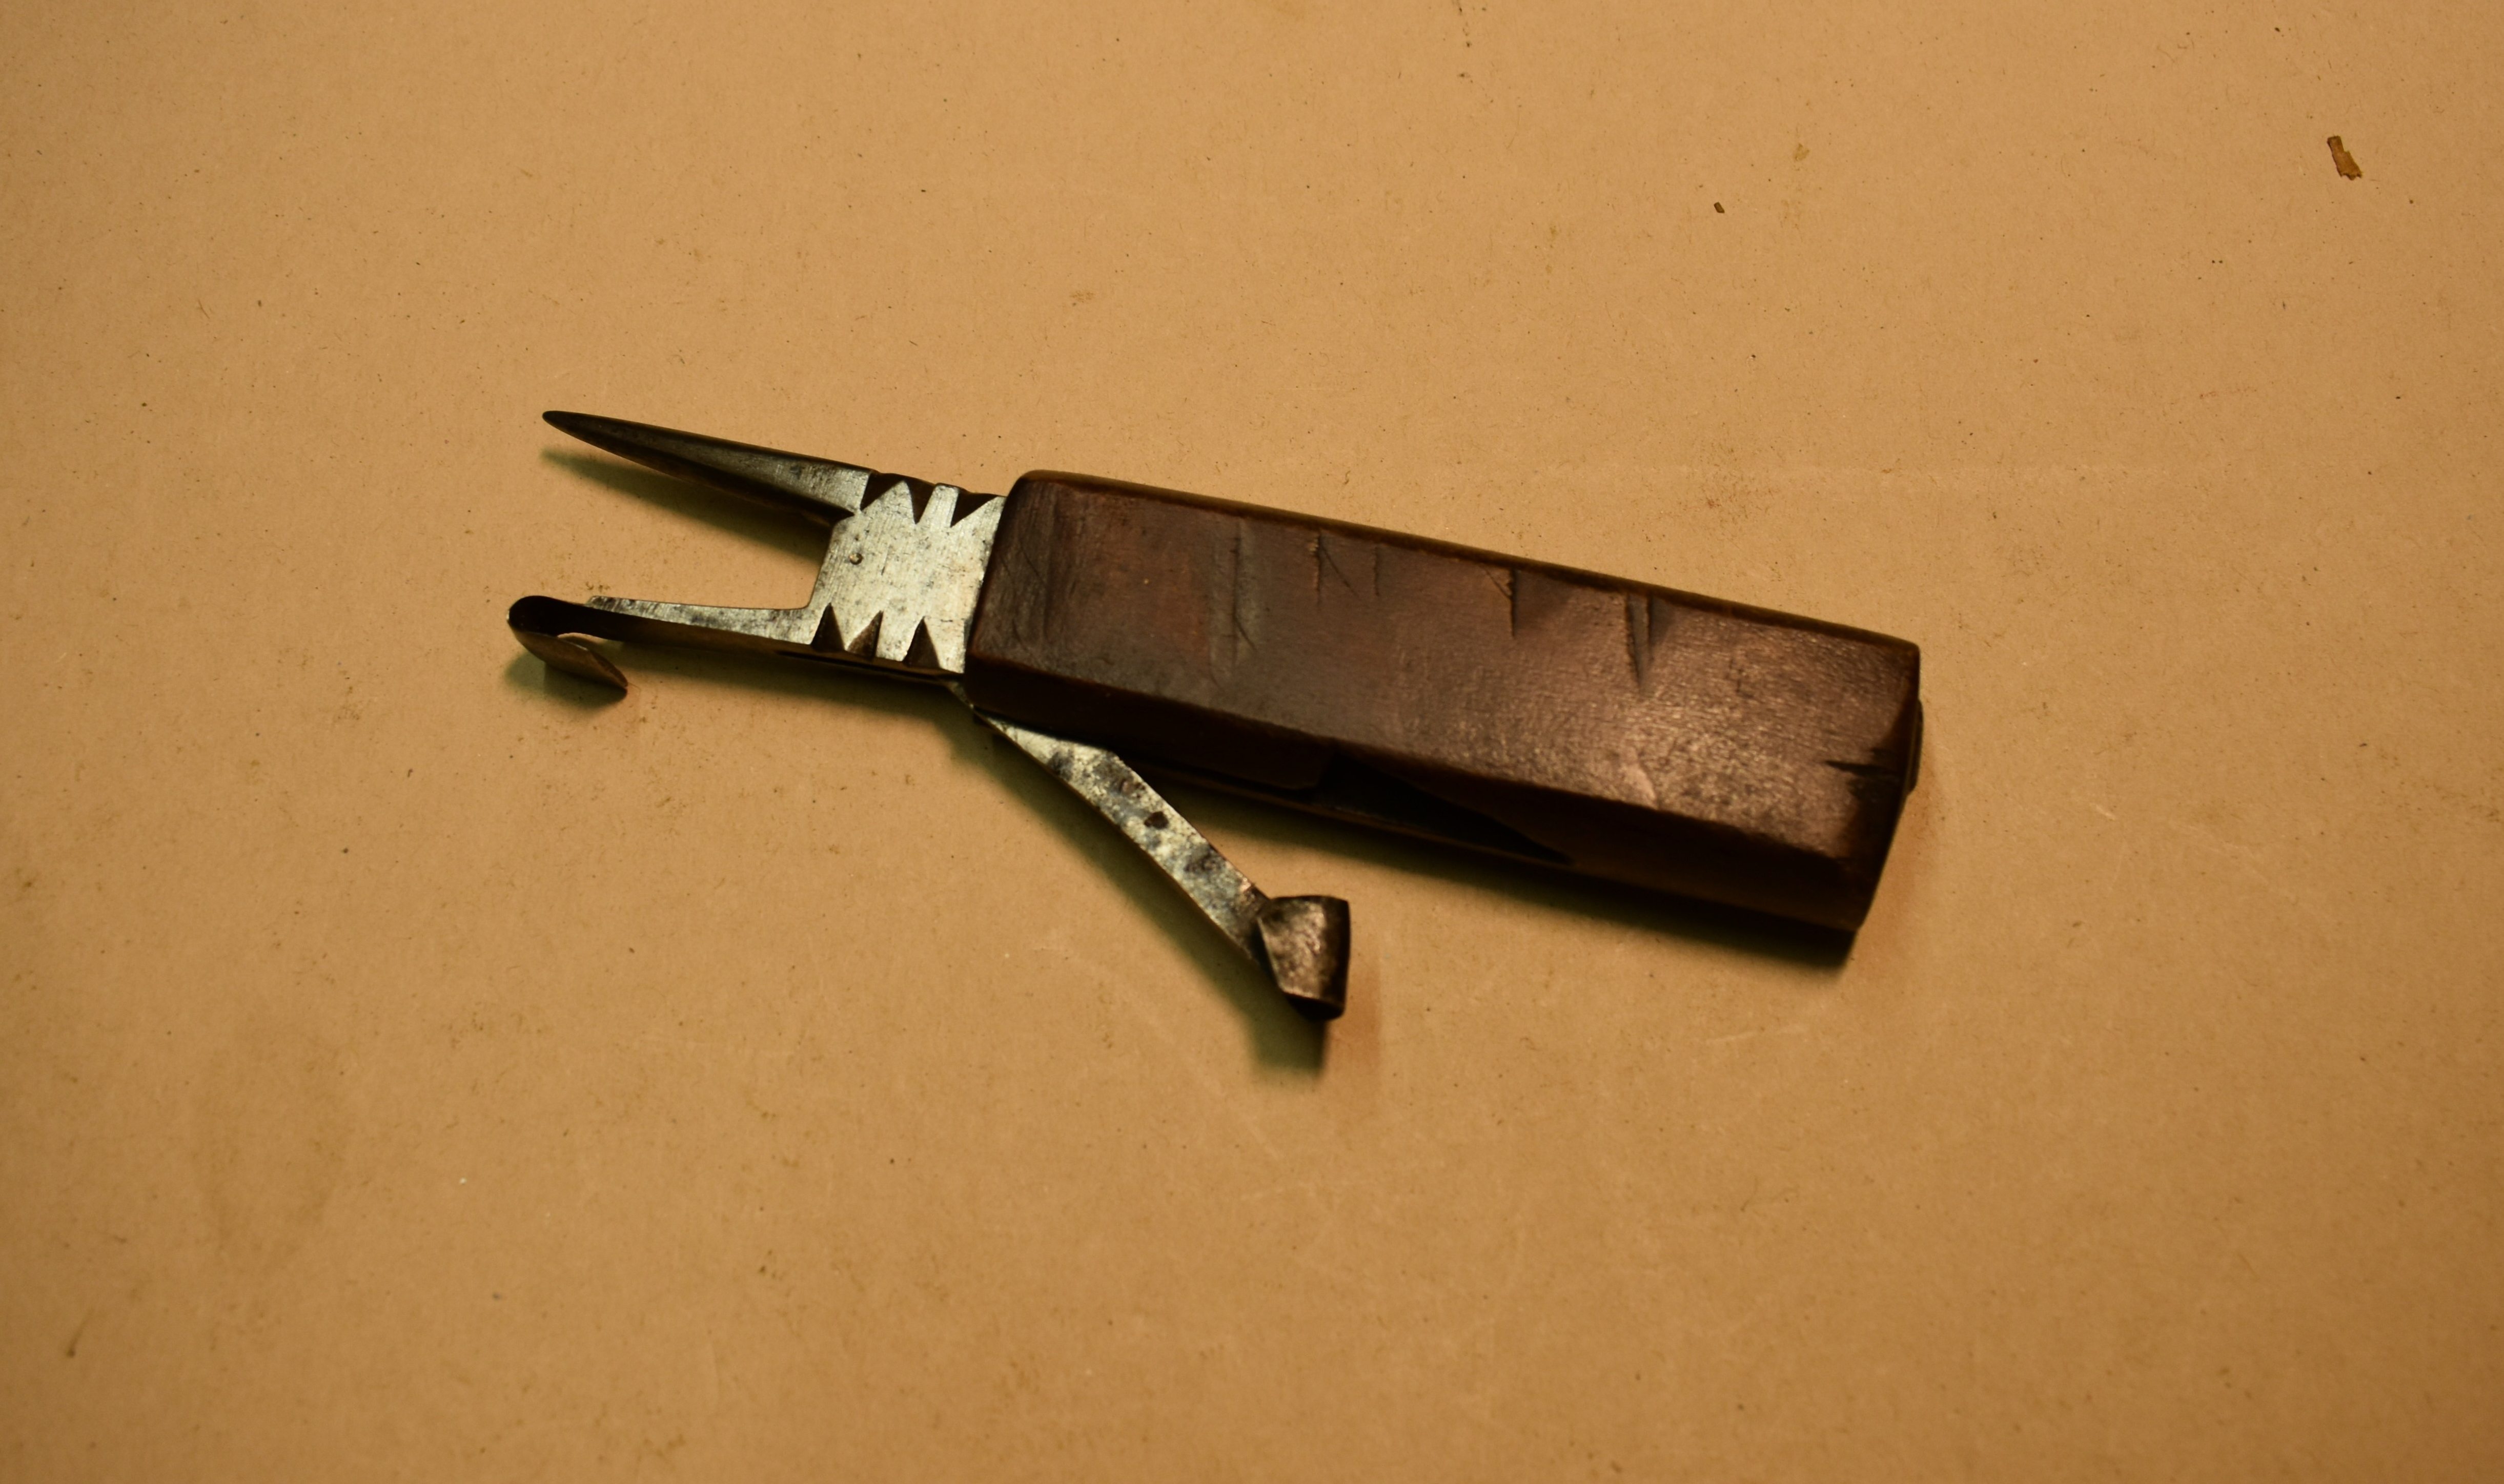 Timber Scribe with race knife.